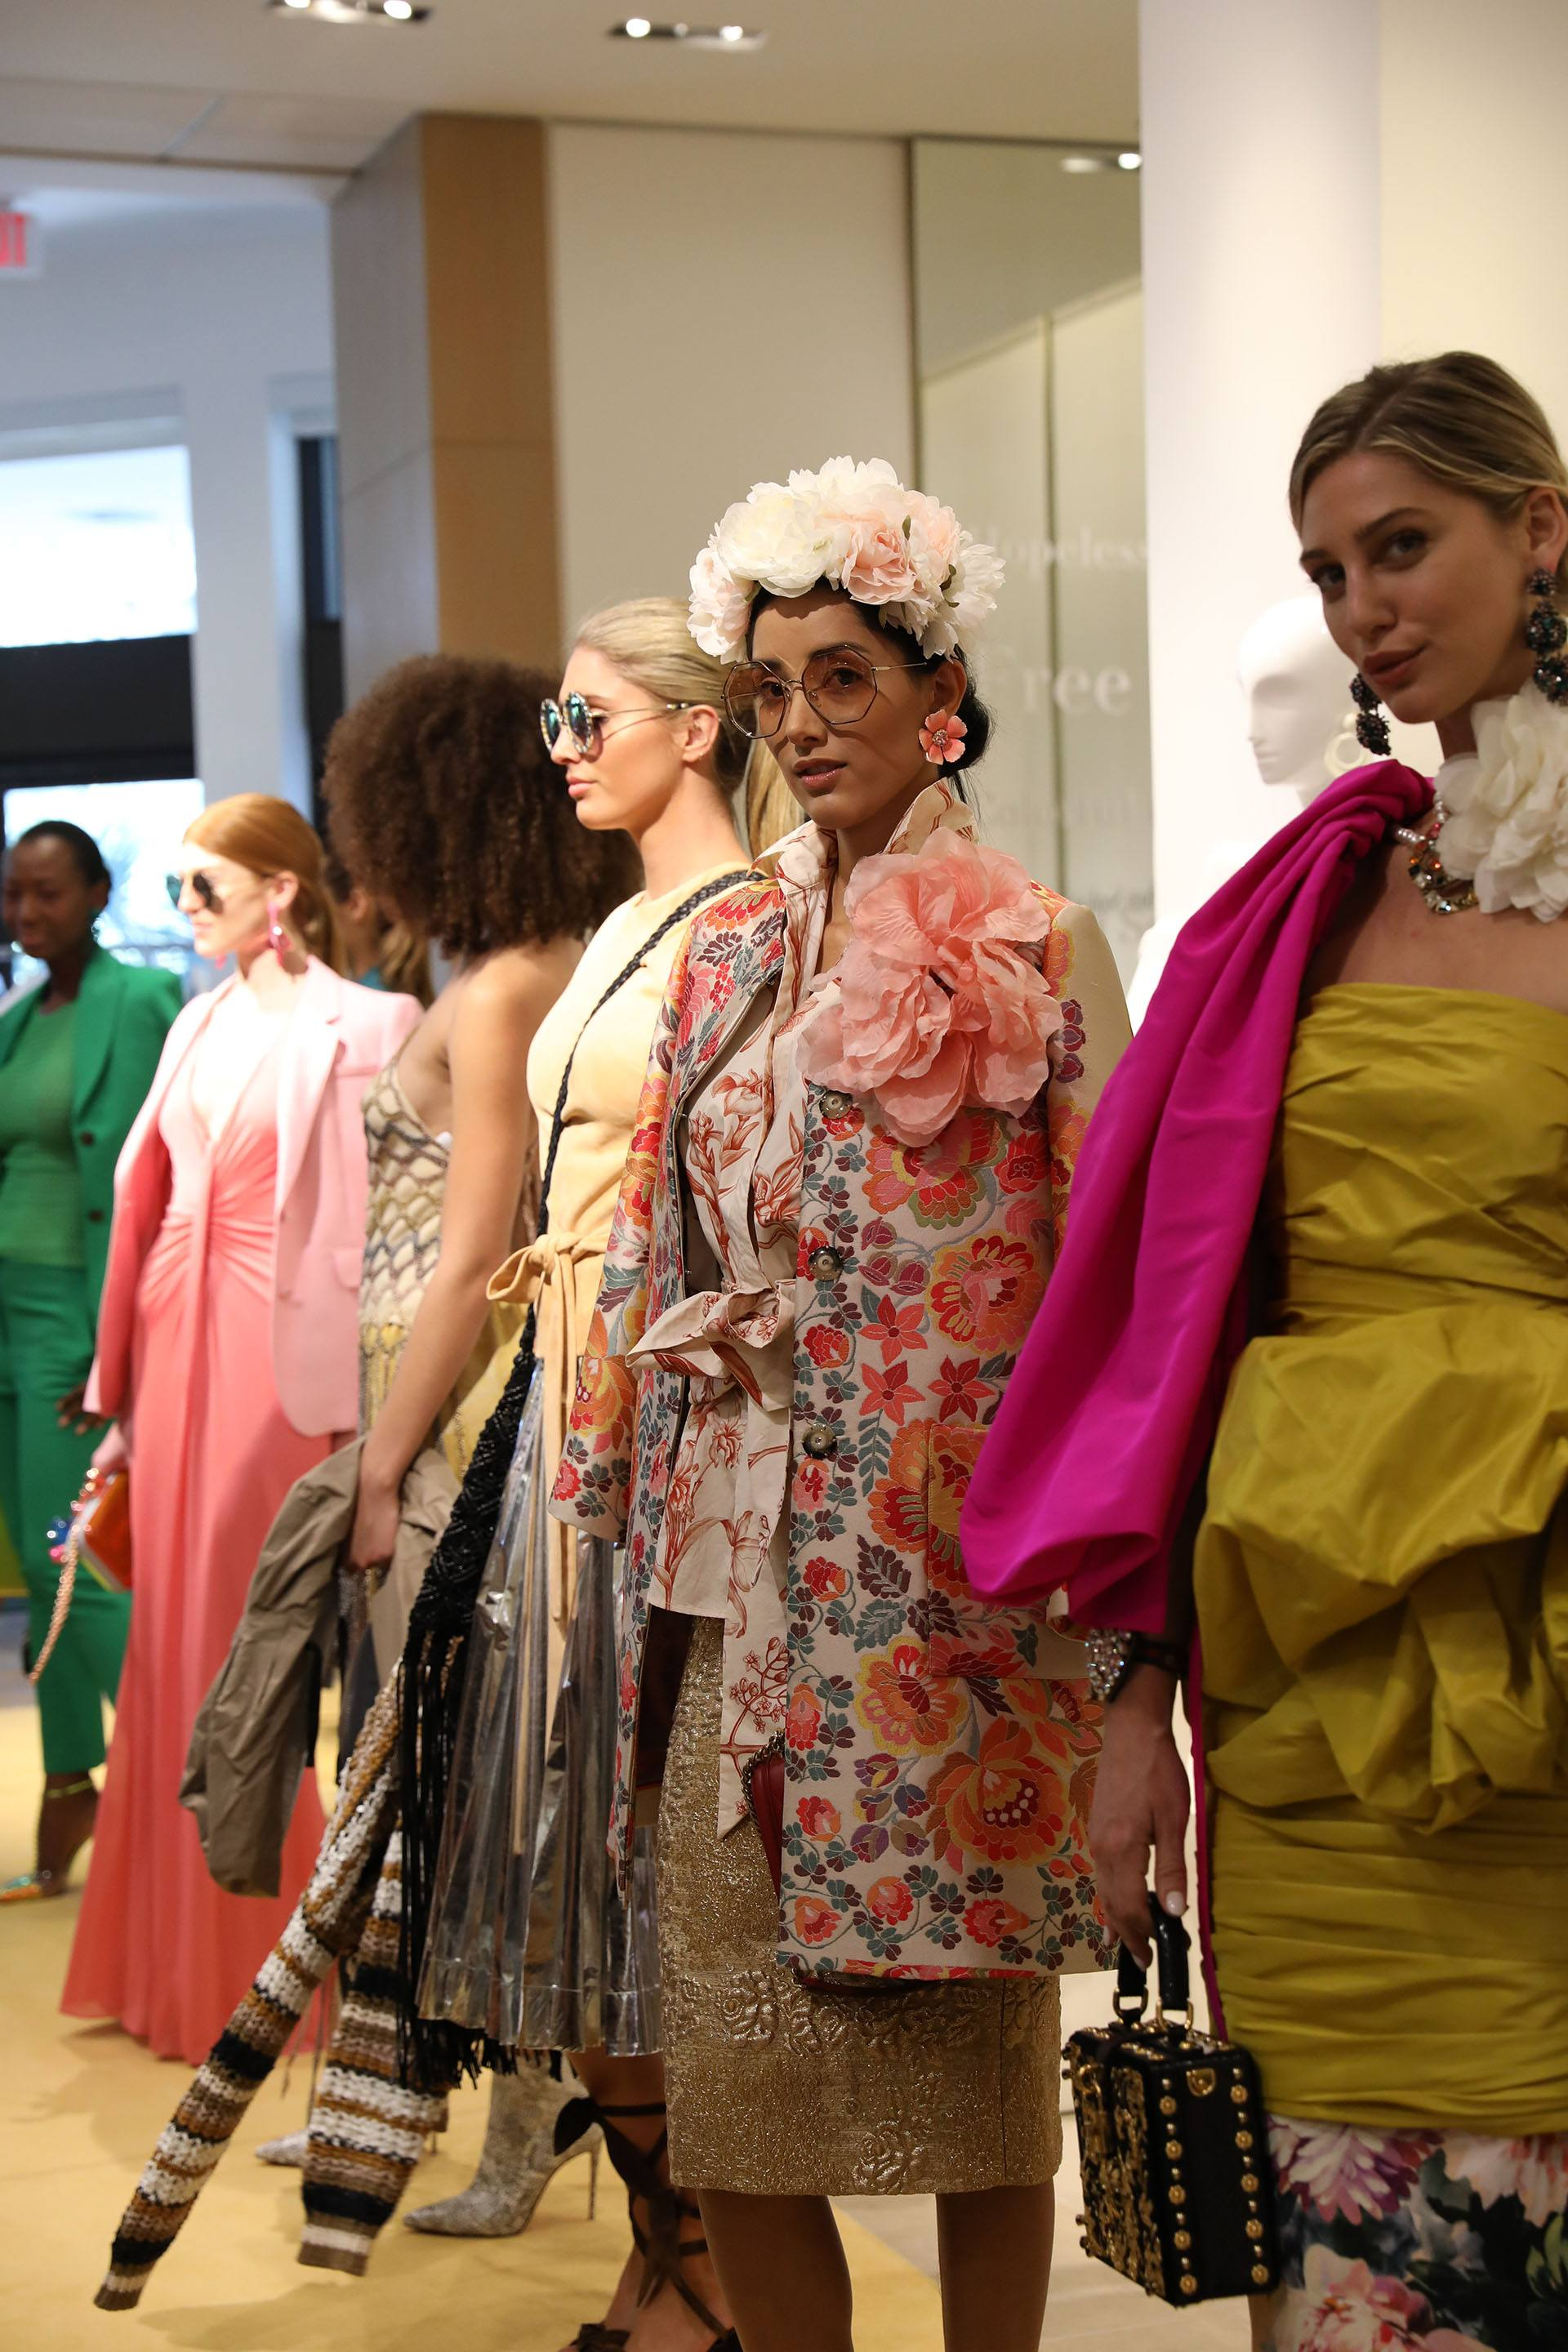 Models in Spring 2019 collection from Neiman Marcus Bal Harbour